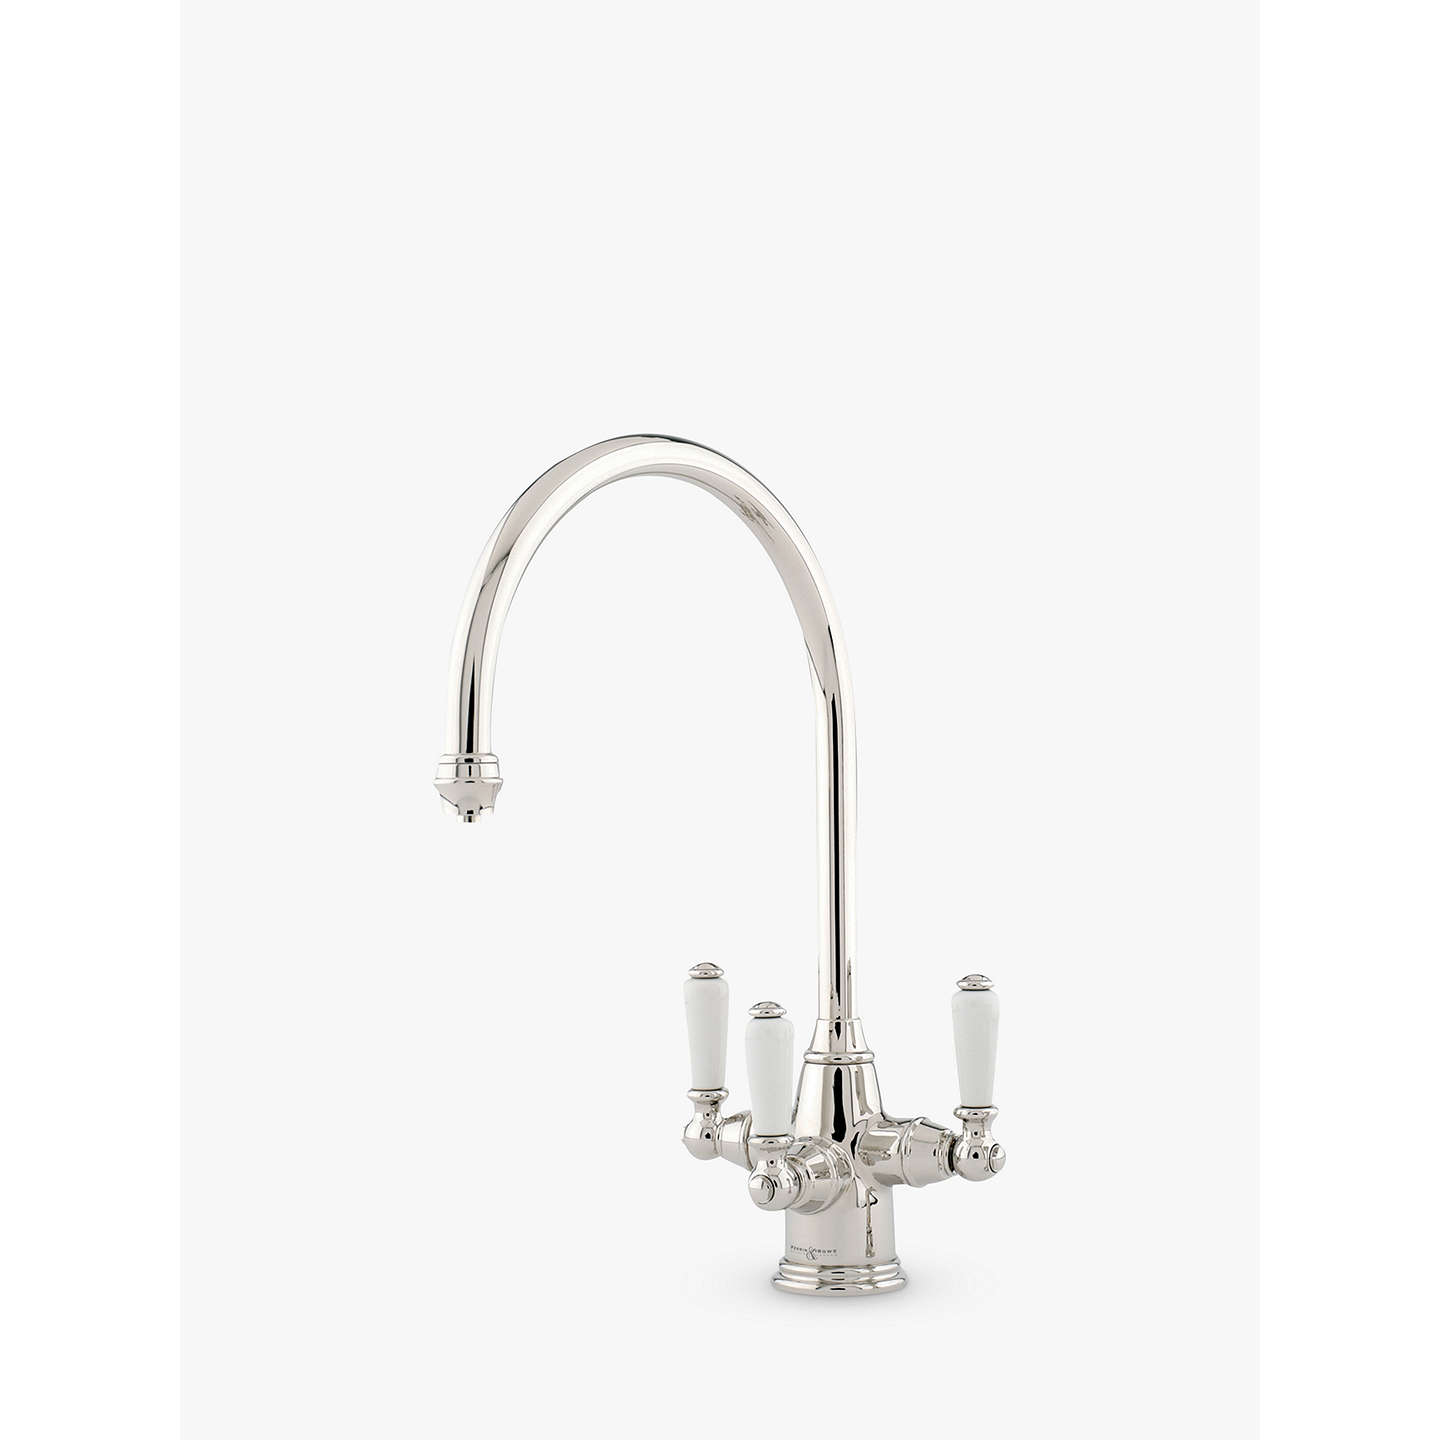 Perrin & Rowe Phoenician 4460 Monobloc 2 Lever Mixer Kitchen Tap at ...